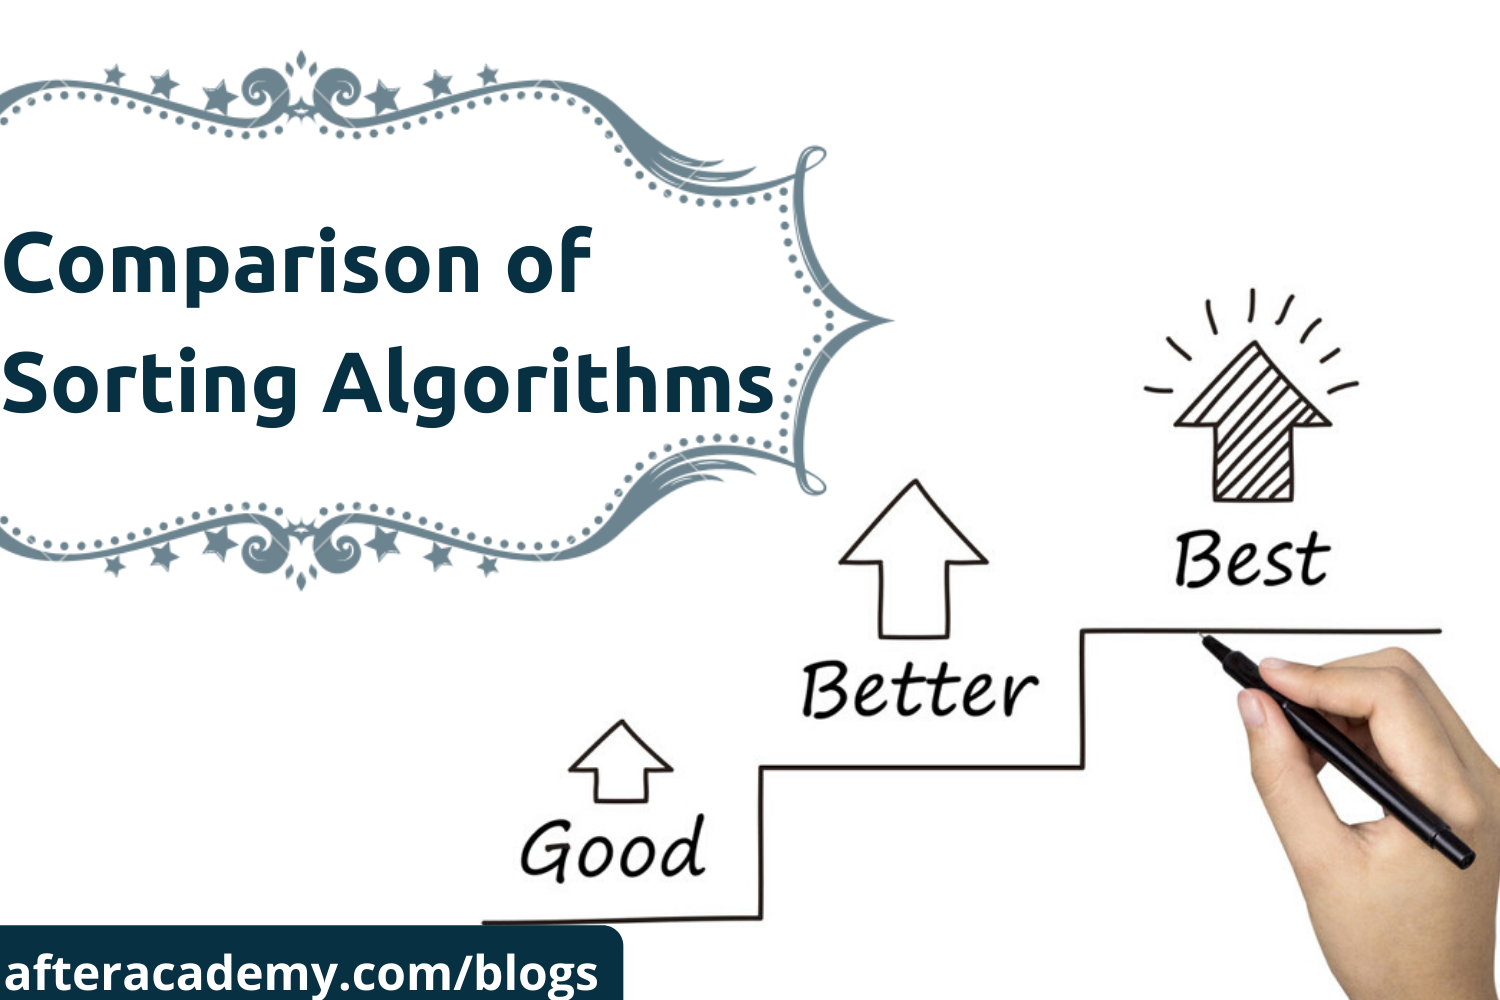 Comparison of Sorting Algorithms